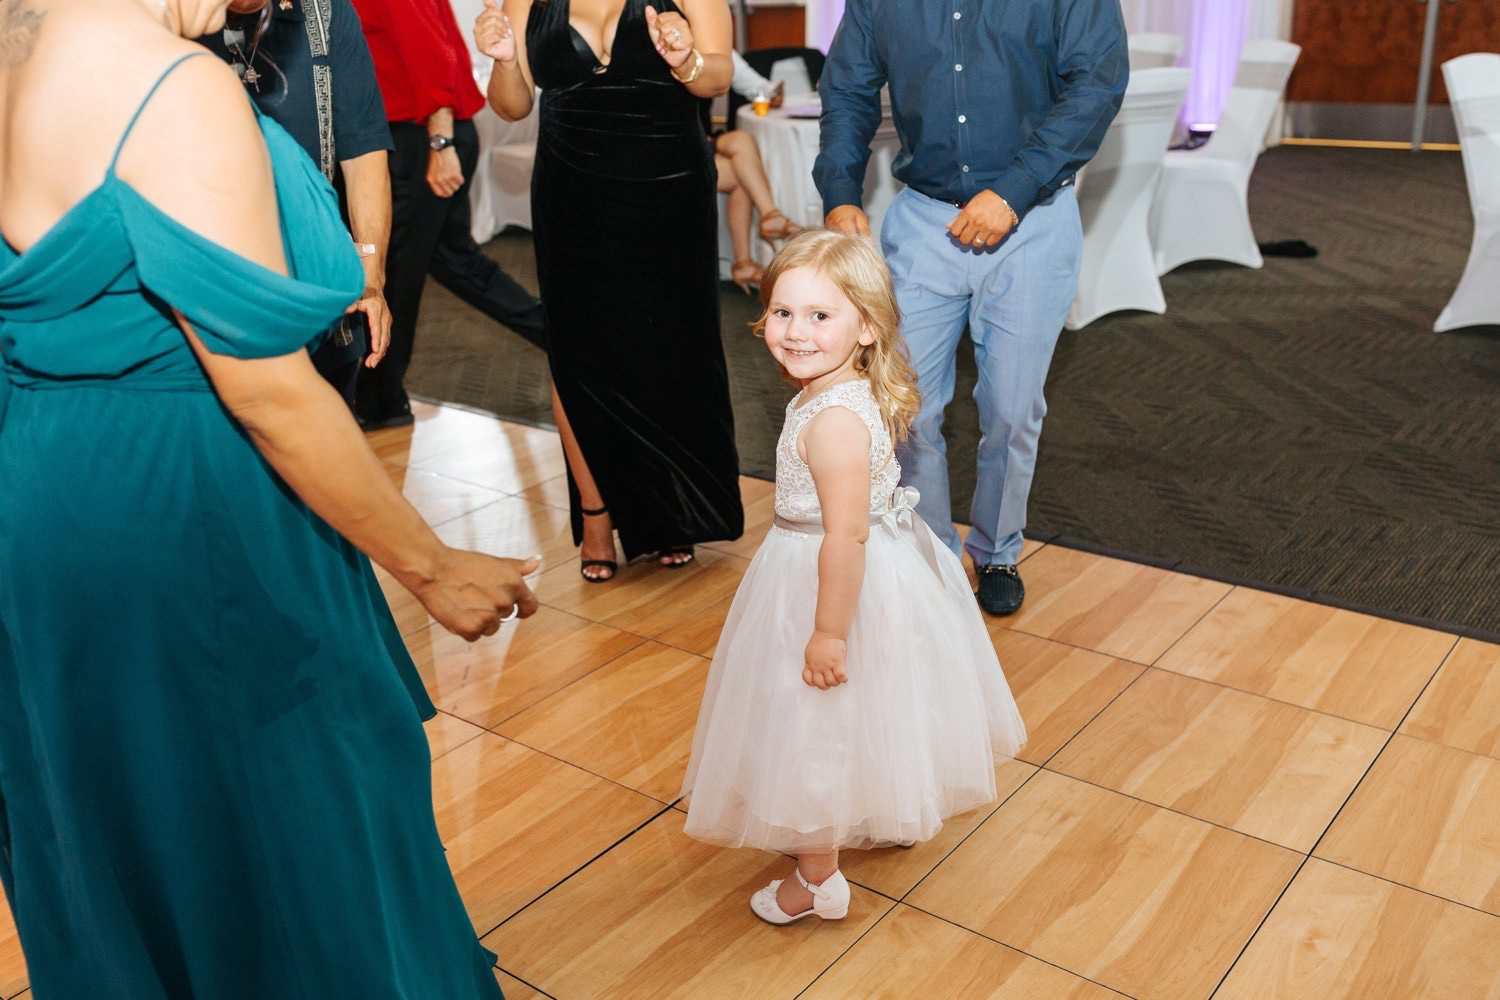 Flower girl dancing during wedding reception - https://brittneyhannonphotography.com